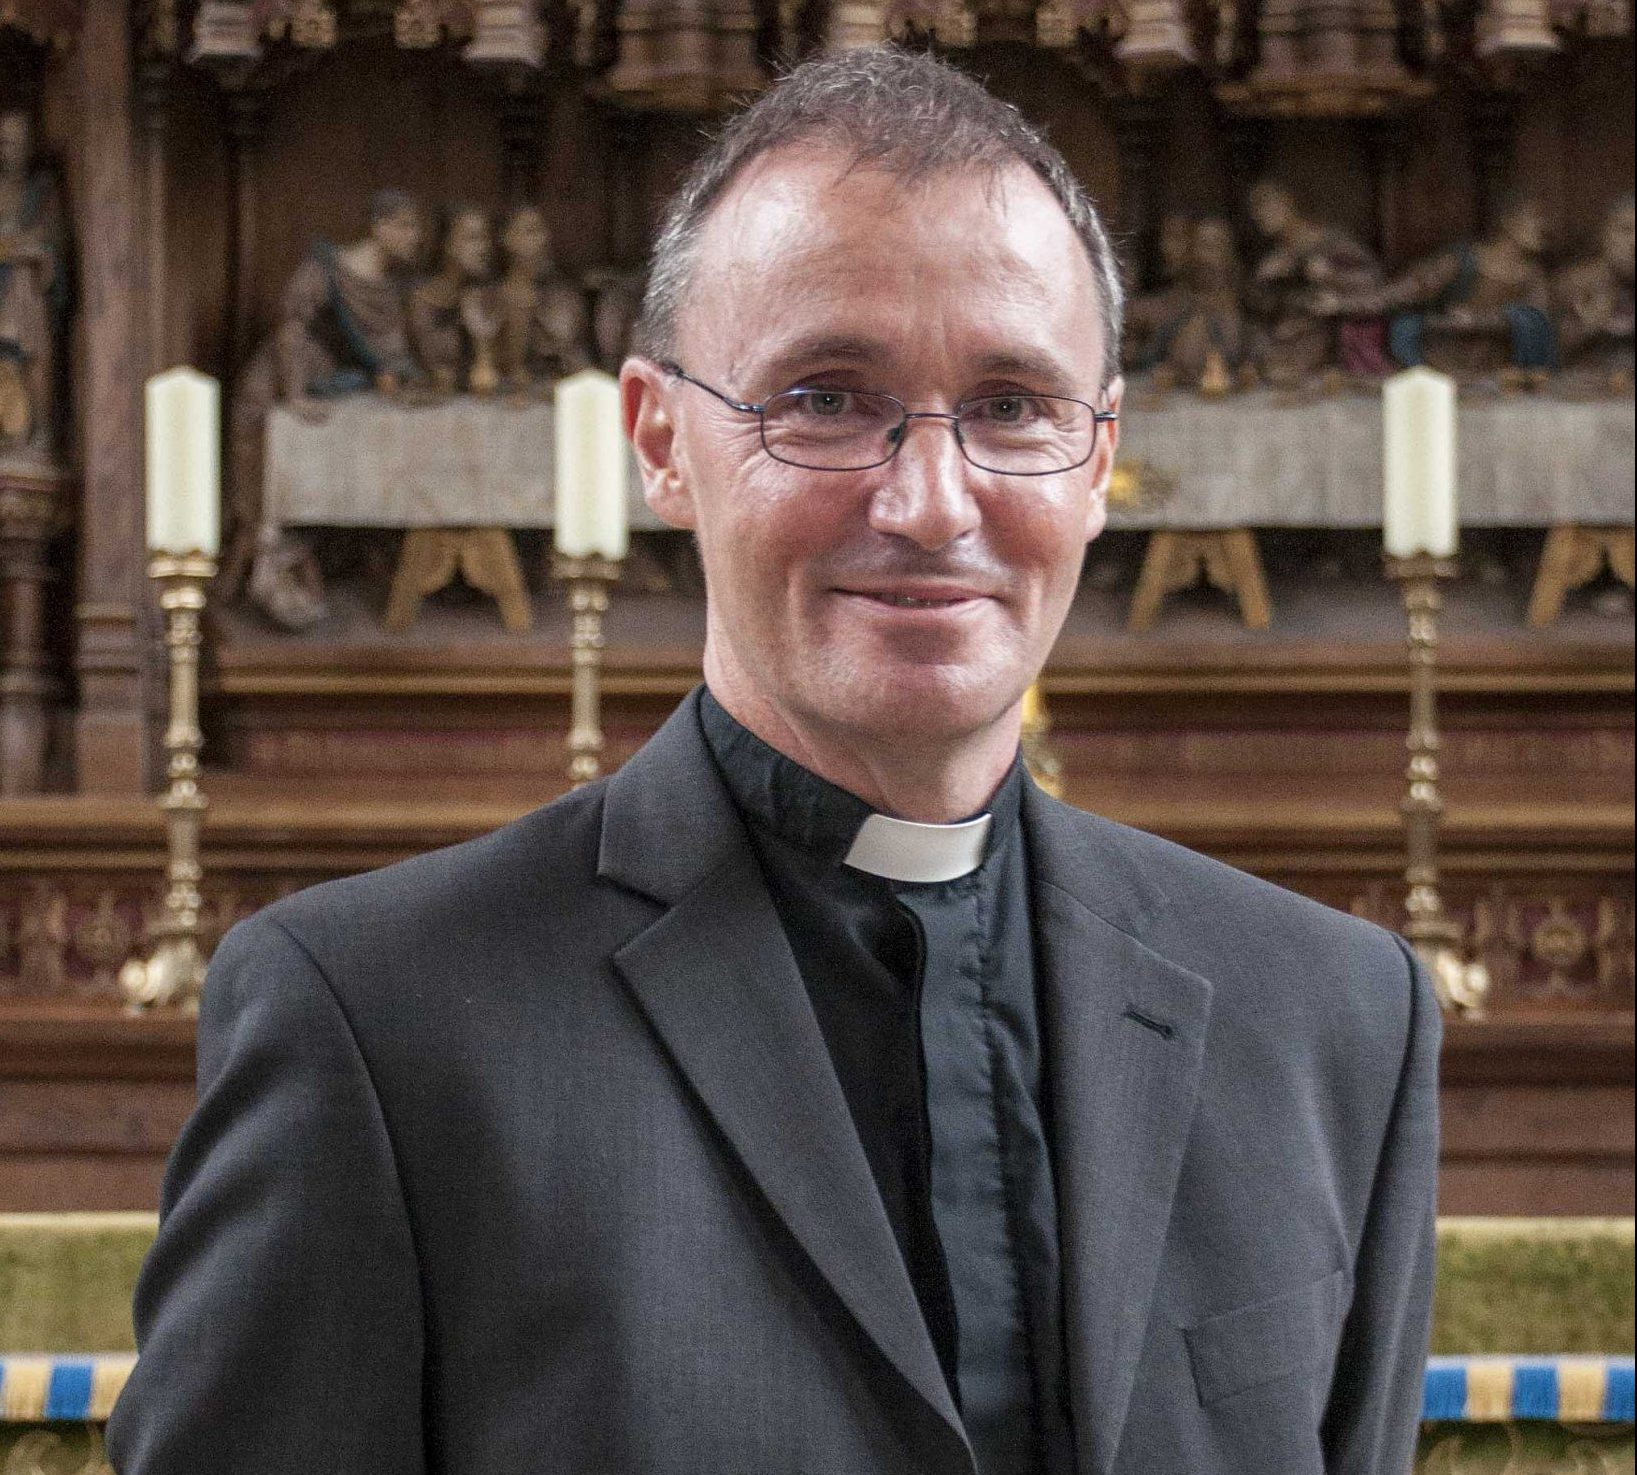 First openly gay bishop gets bashing from Christian organisation